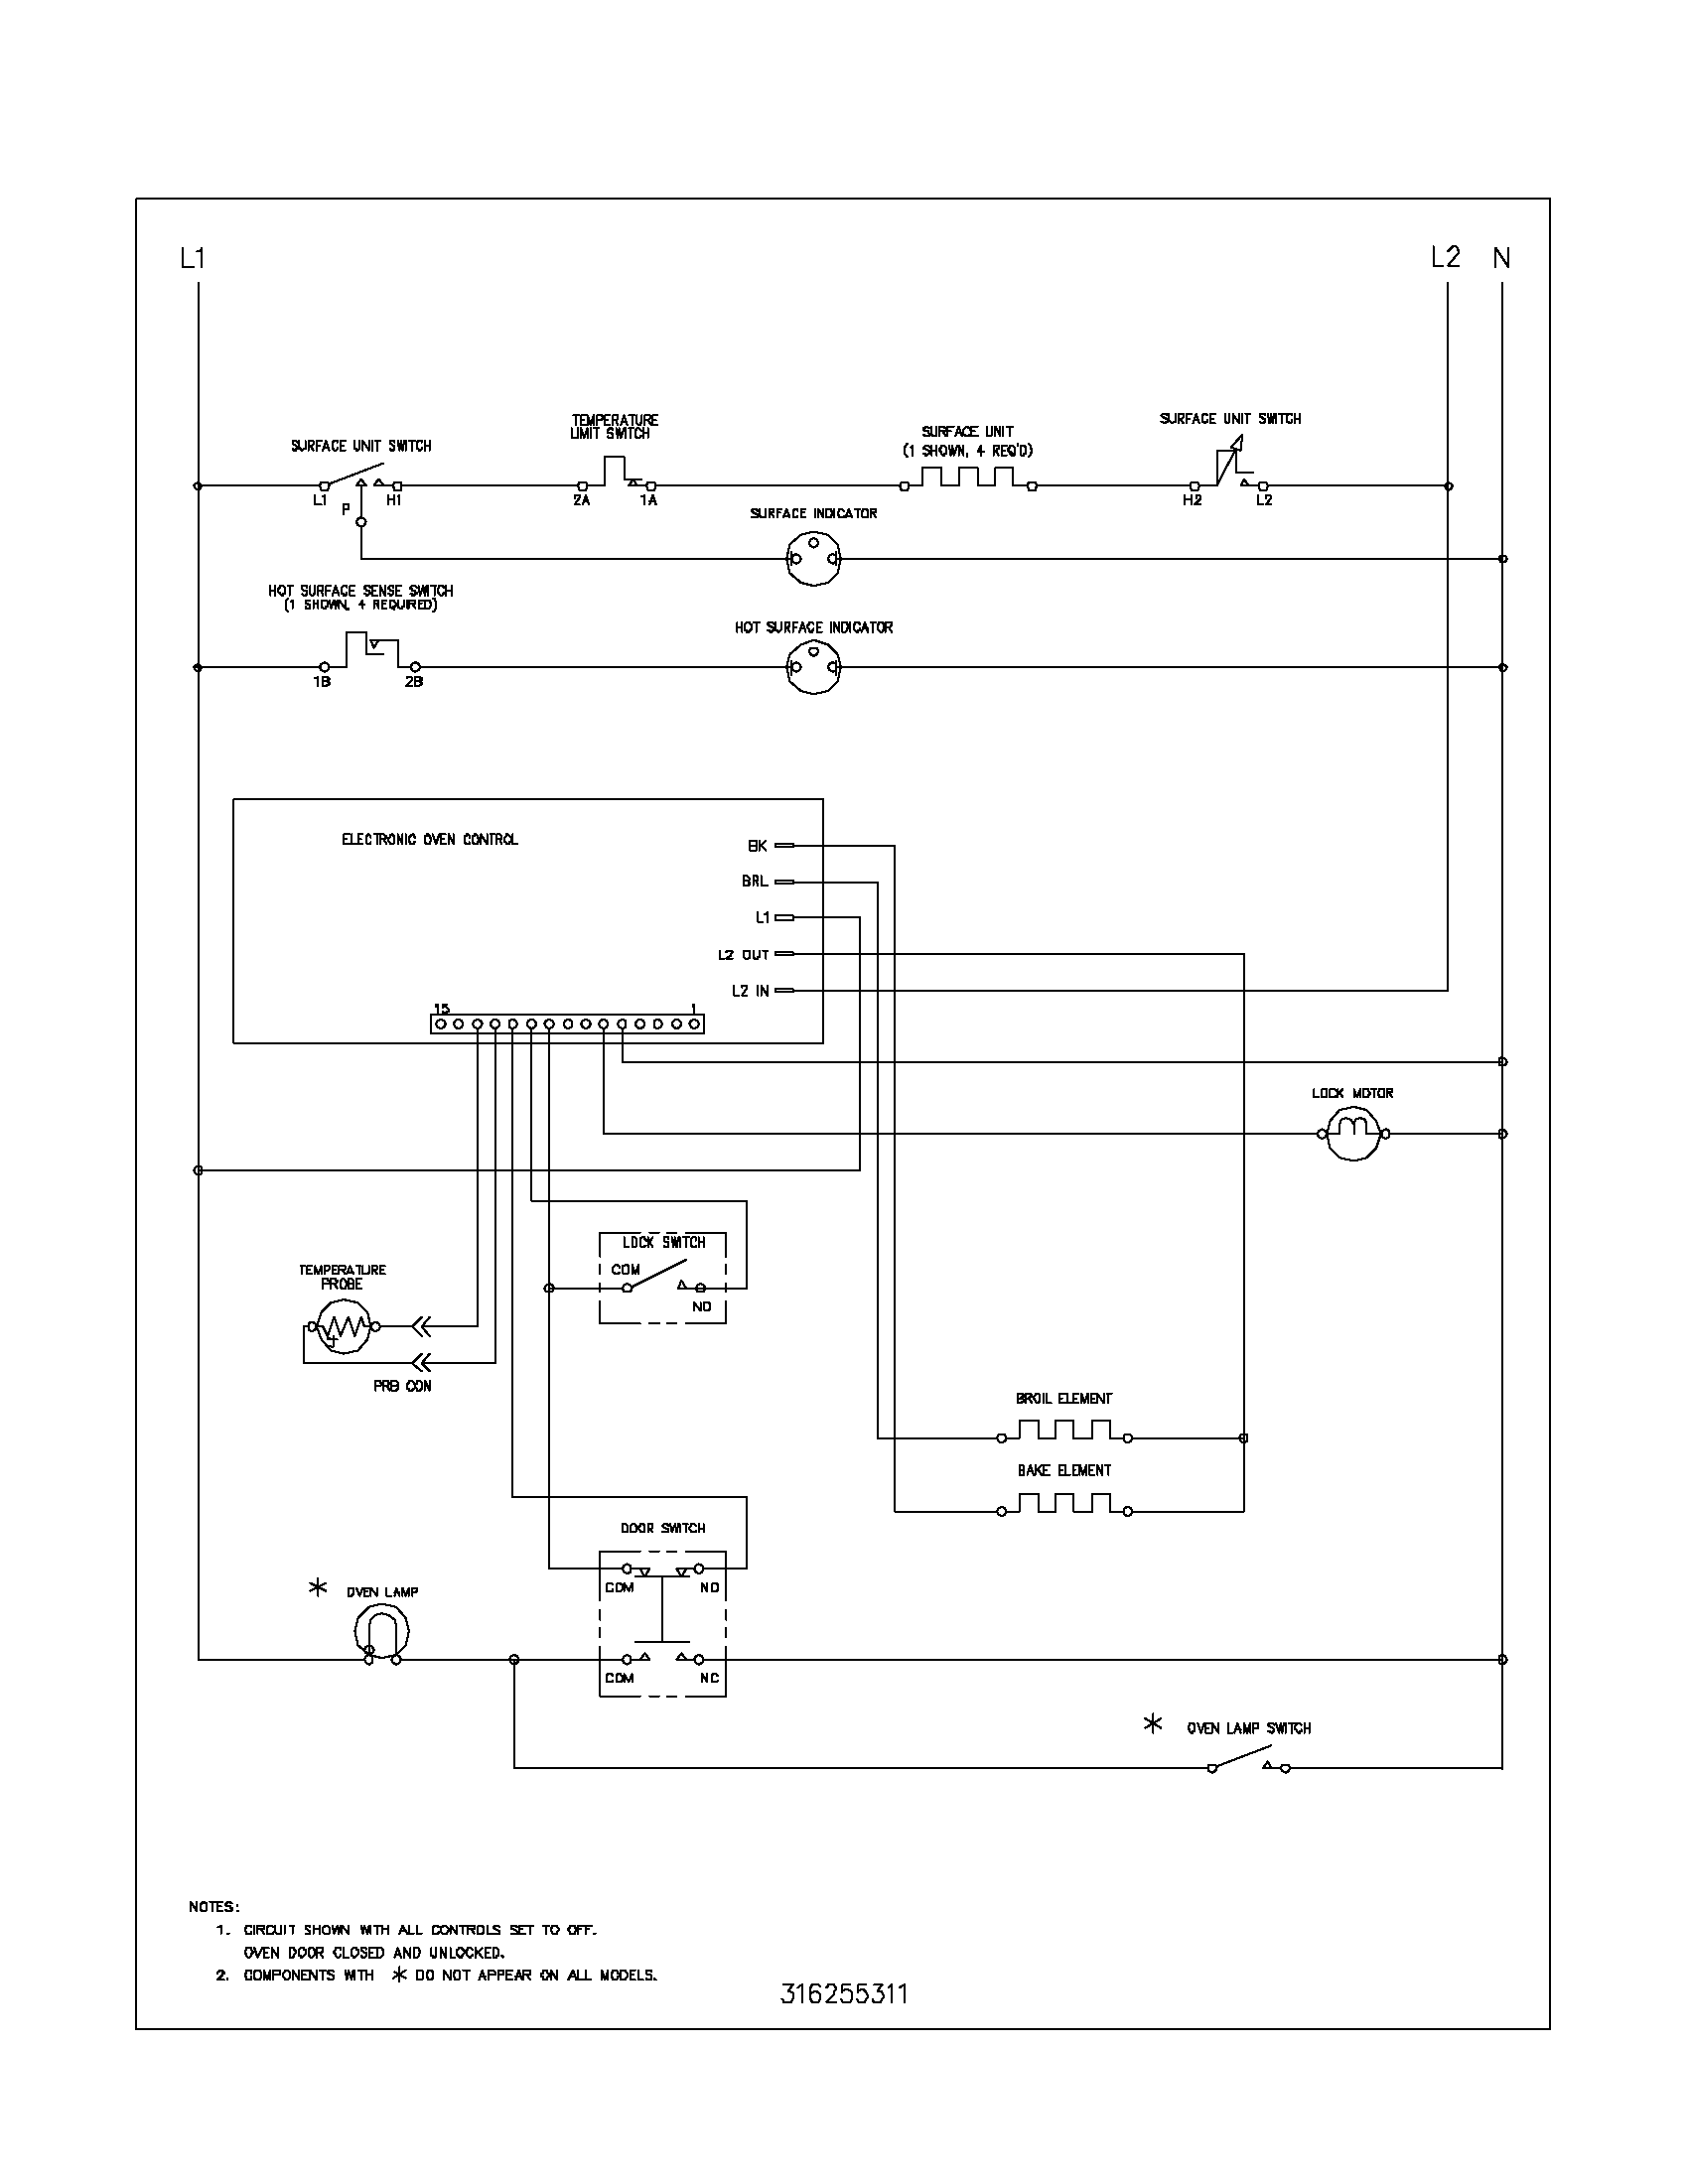 Induction Heater Circuit Diagram Download Not Lossing Wiring Cooker On For Cooktop Stove Free Homemade 12v